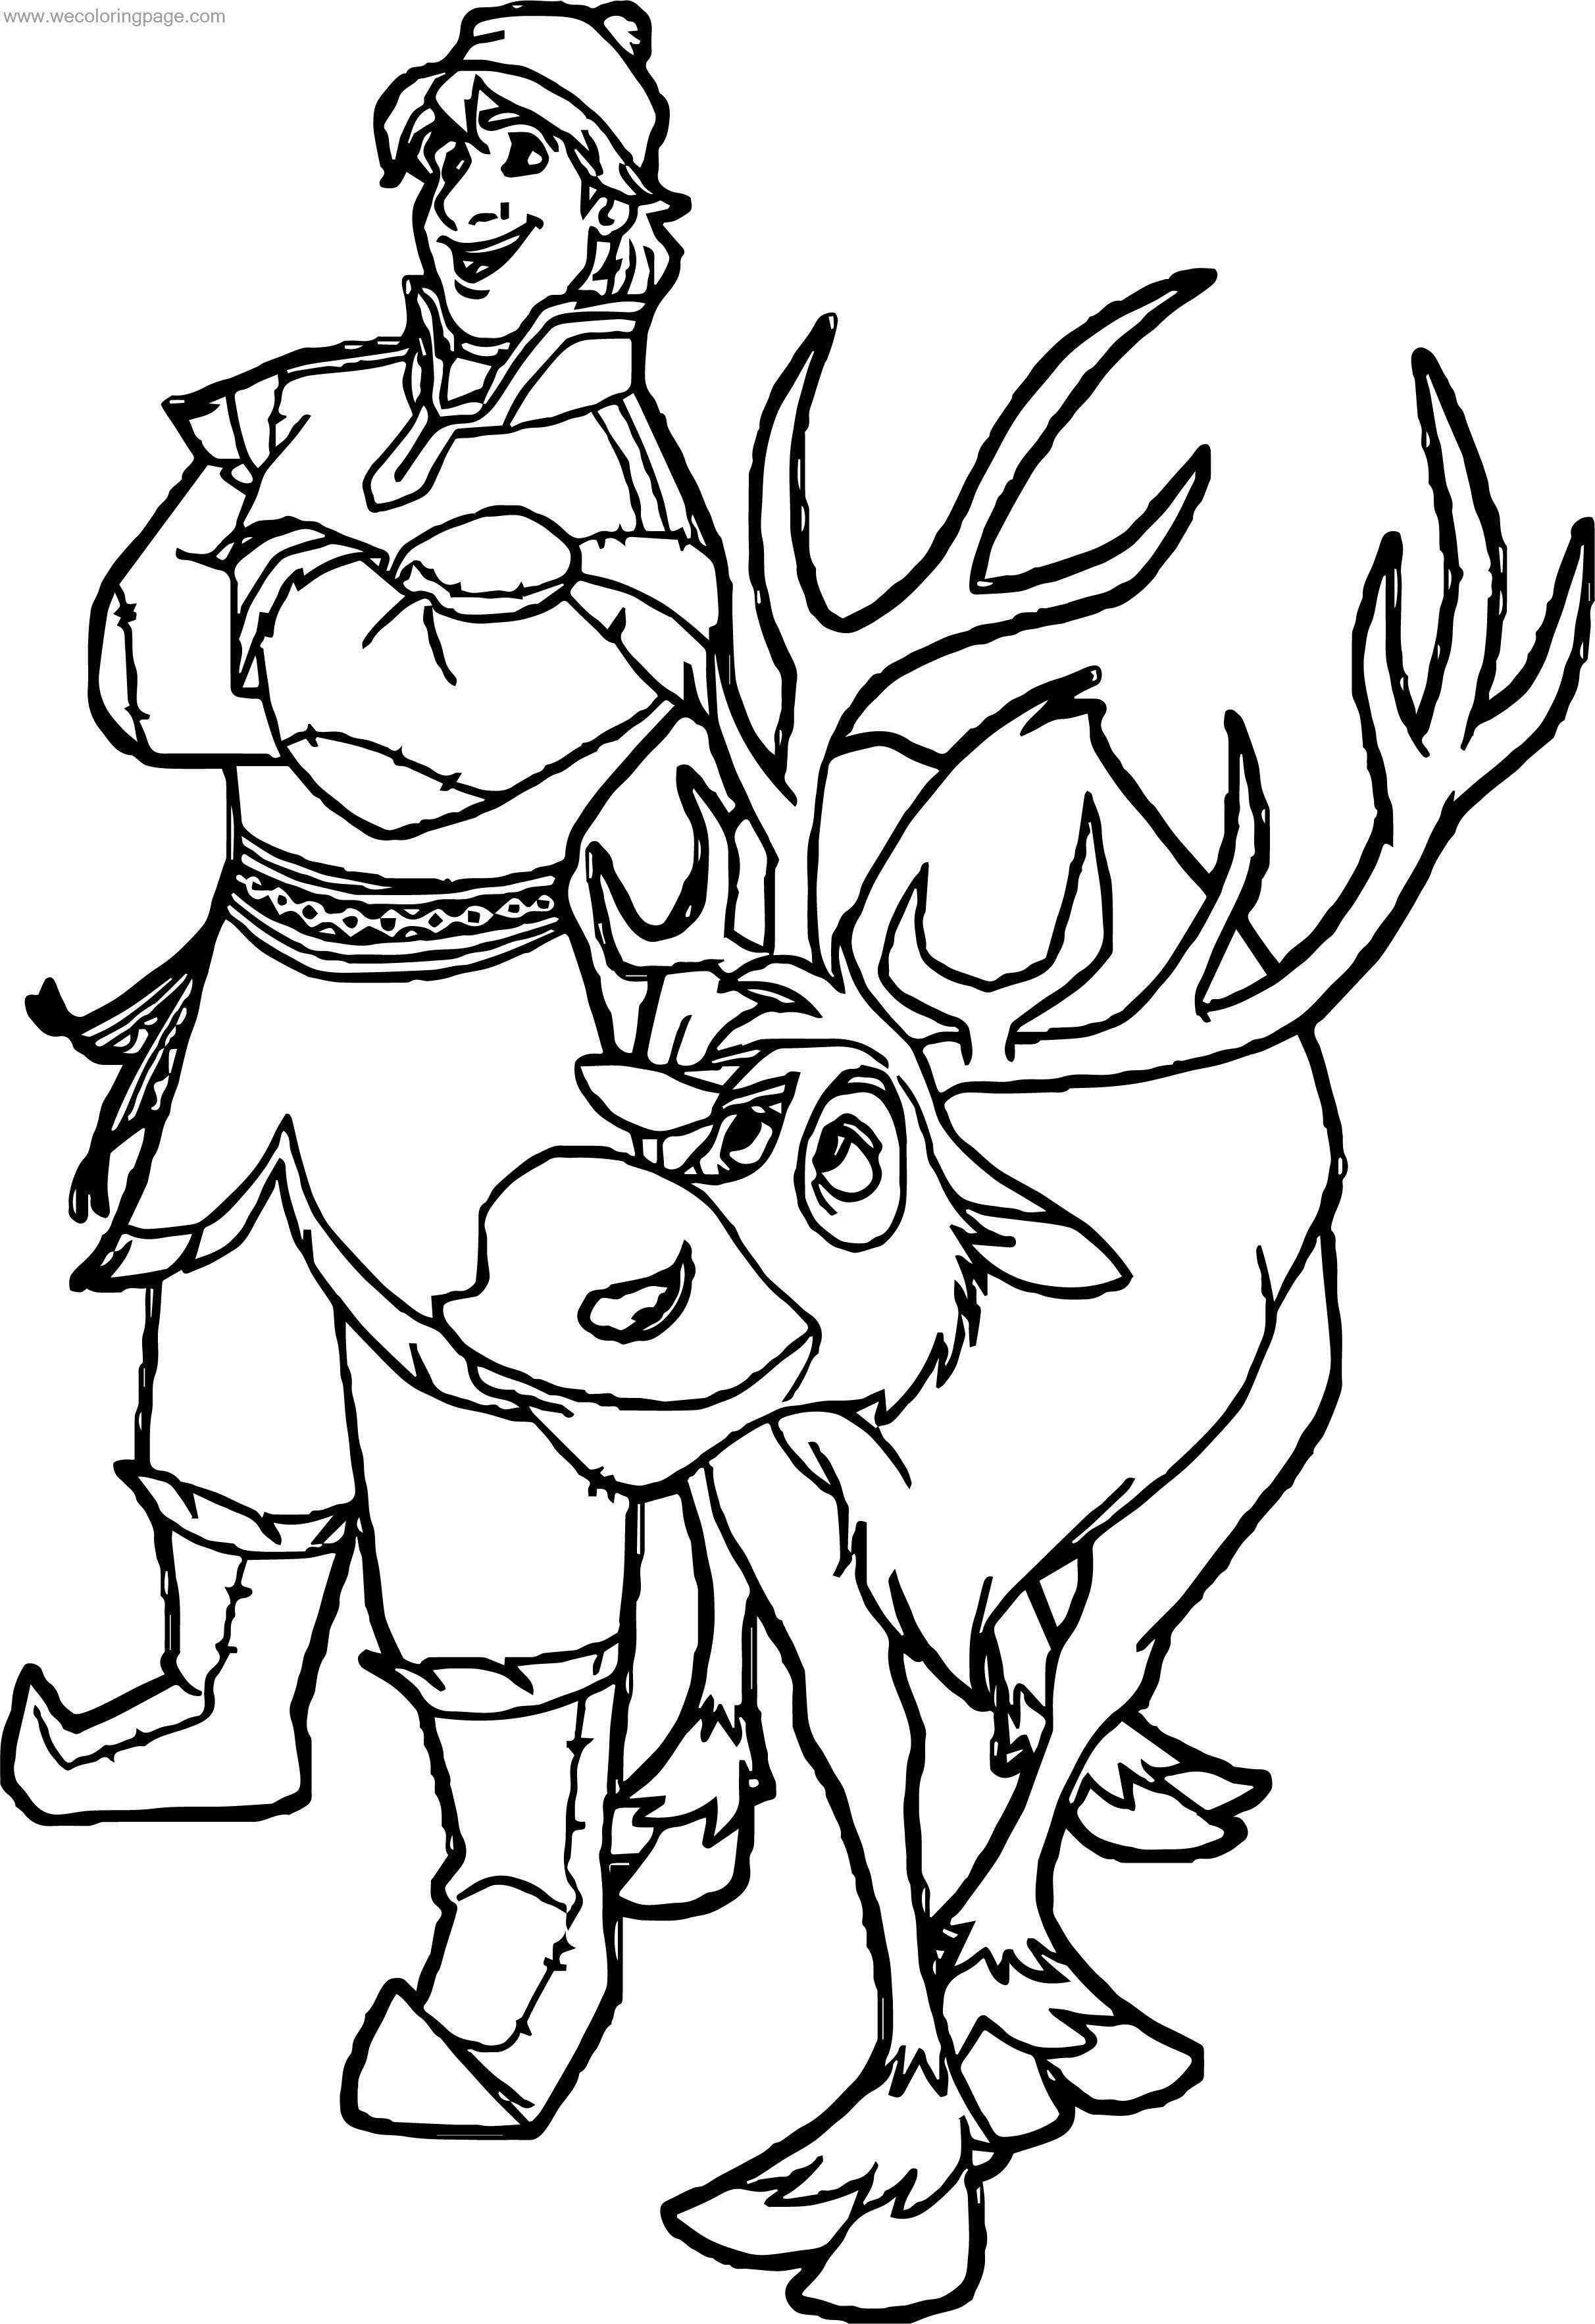 coloring pages of frozen sven dog | Kristoff Sven Deer Coloring Page | Wecoloringpage.com